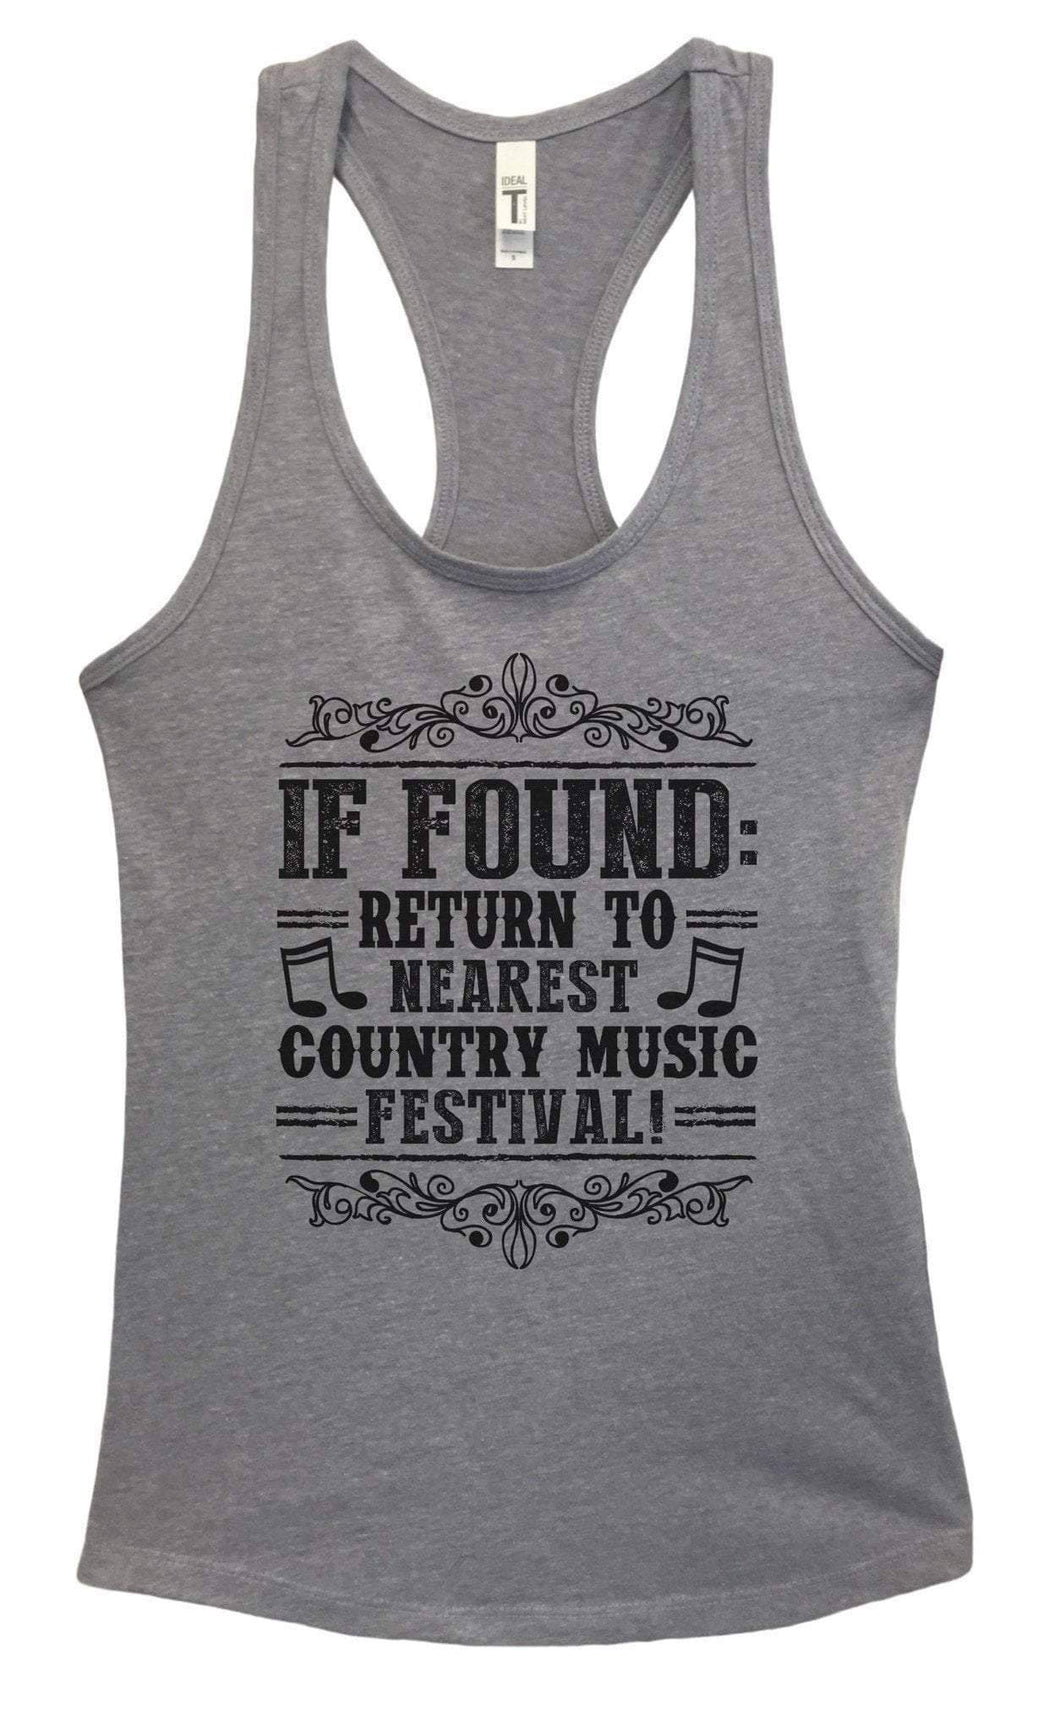 Womens If Found Return To Nearest Country Music Festival Grapahic Design Fitted Tank Top Small Womens Tank Tops Heather Grey